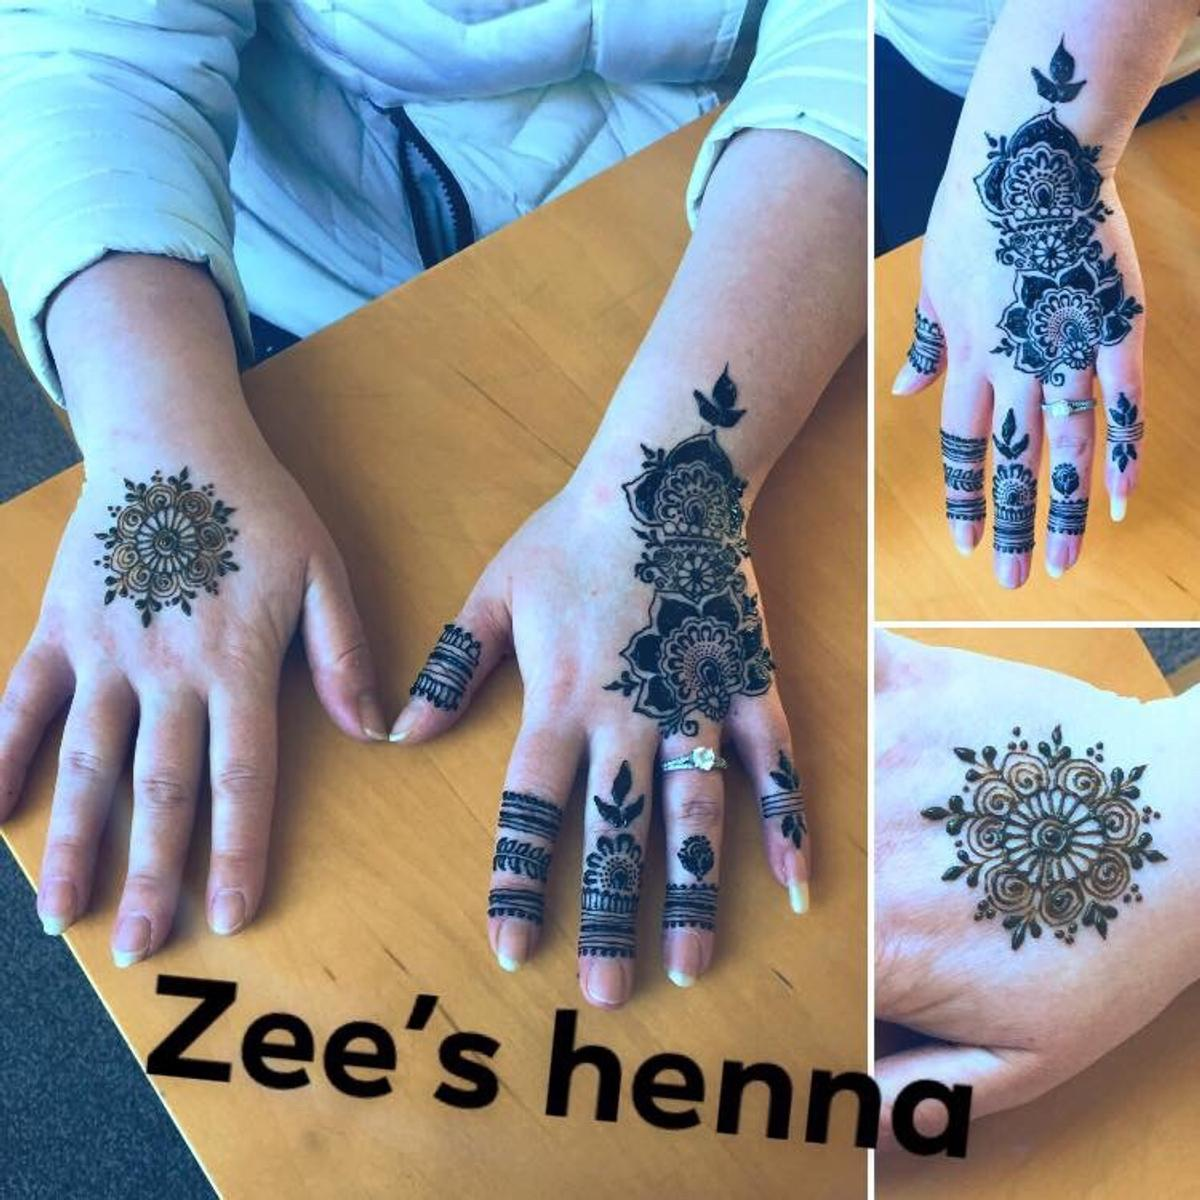 Black henna tattoo in Longton for £5.00 for sale - Shpock